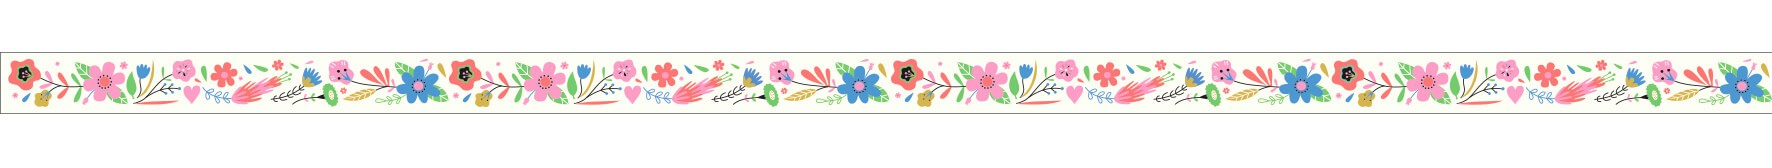 Cinta adhesiva Flores - Lovely paper